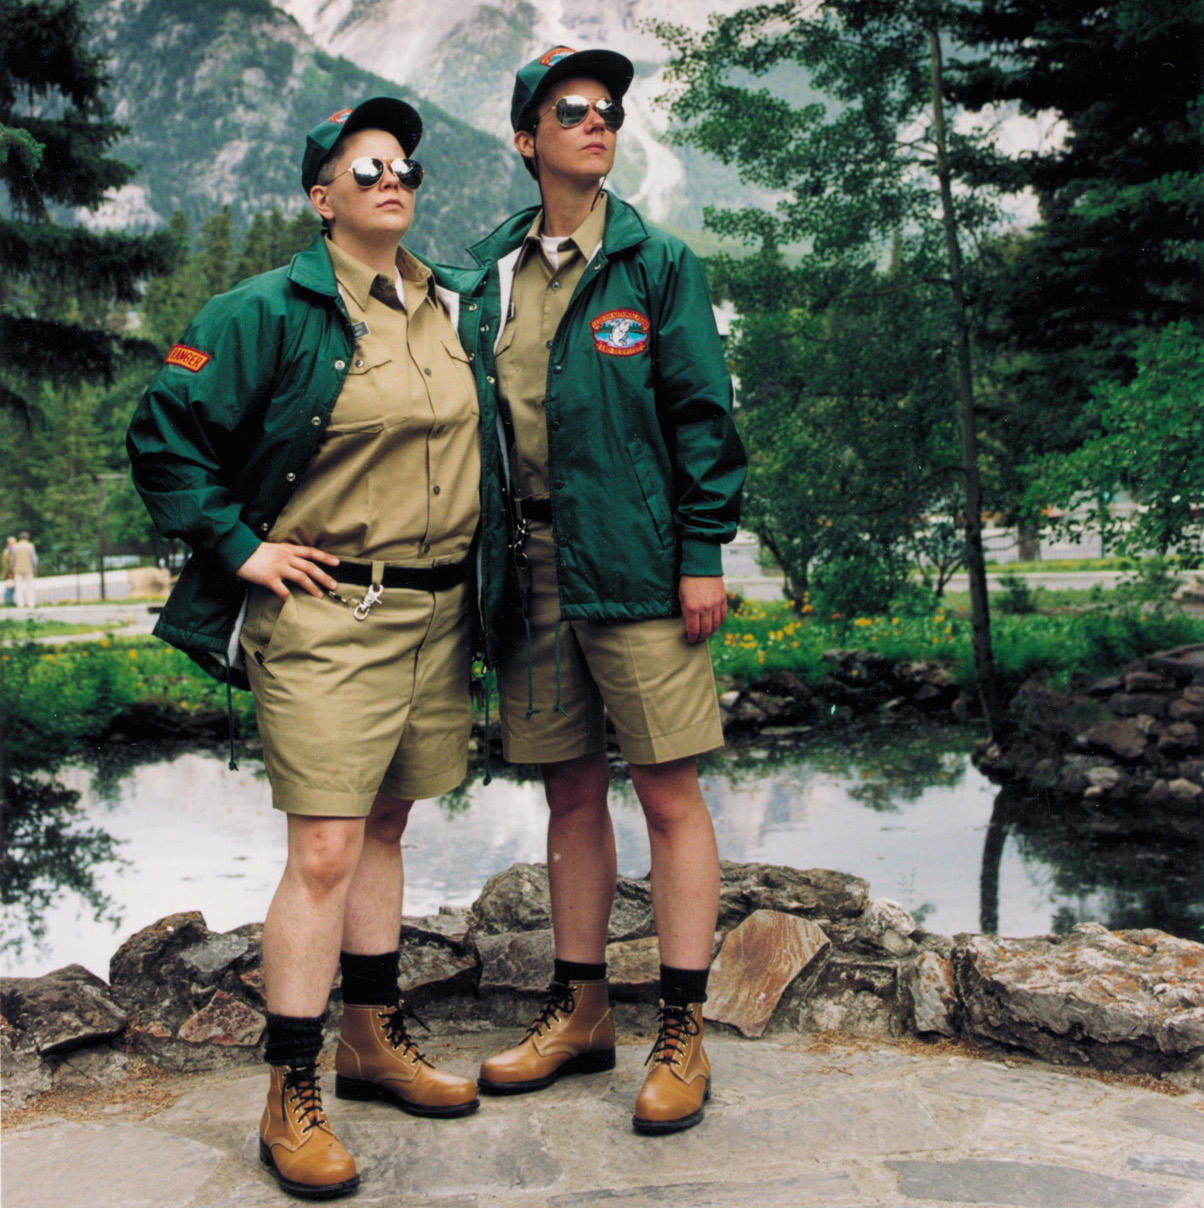 Lesbian National Parks and Services, Shawna Dempsey & Lorri Millan, 1997